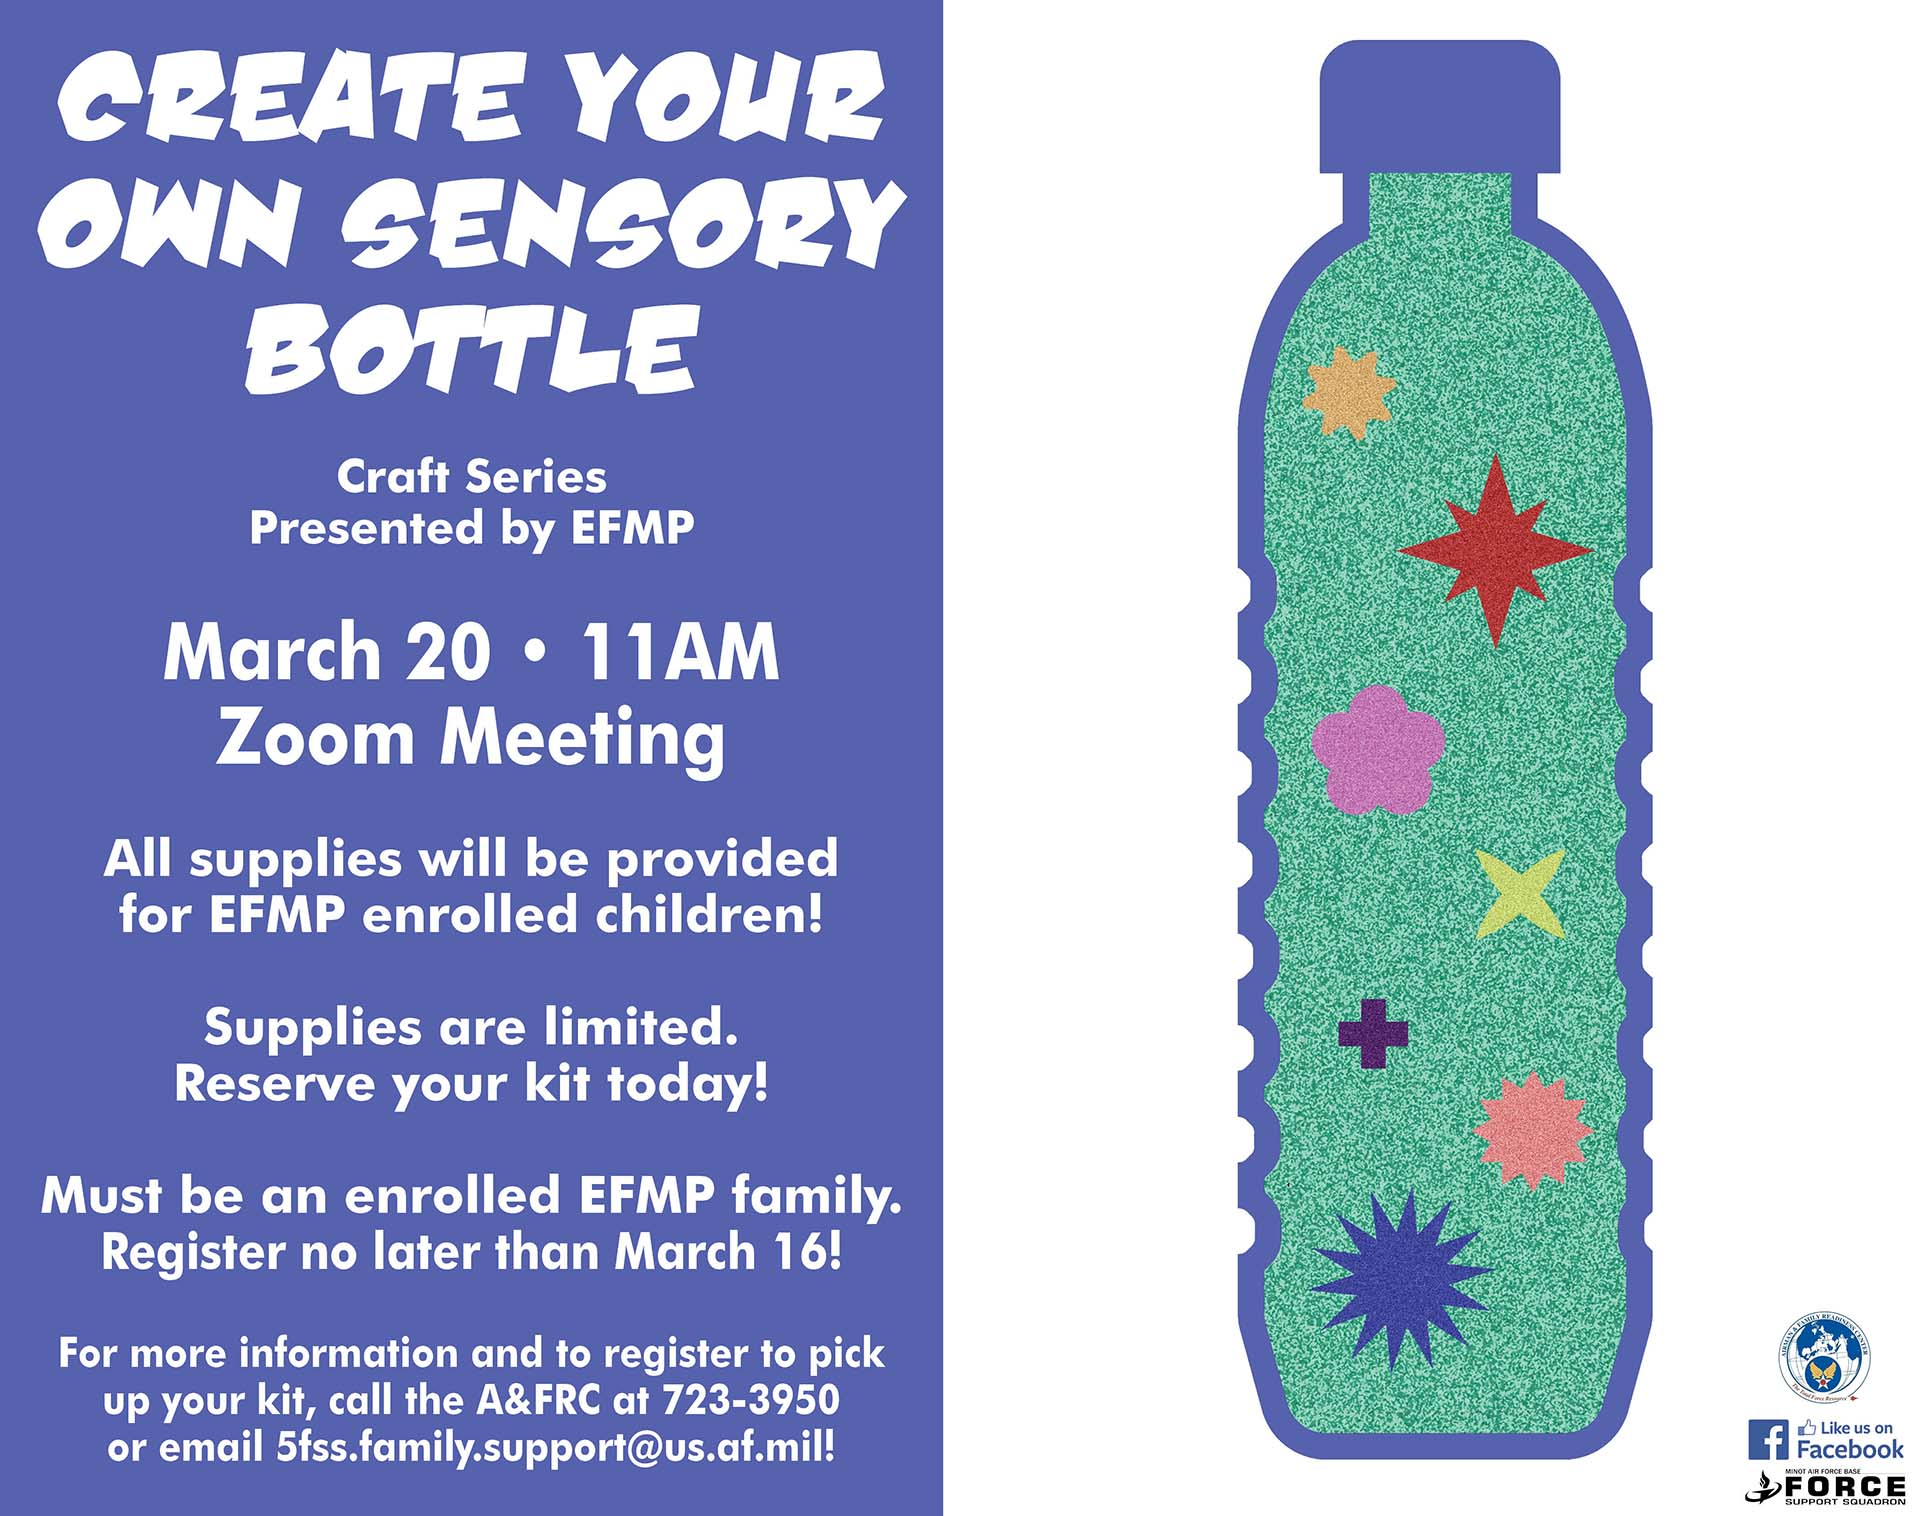 EFMP - Create Your Own Sensory Bottle